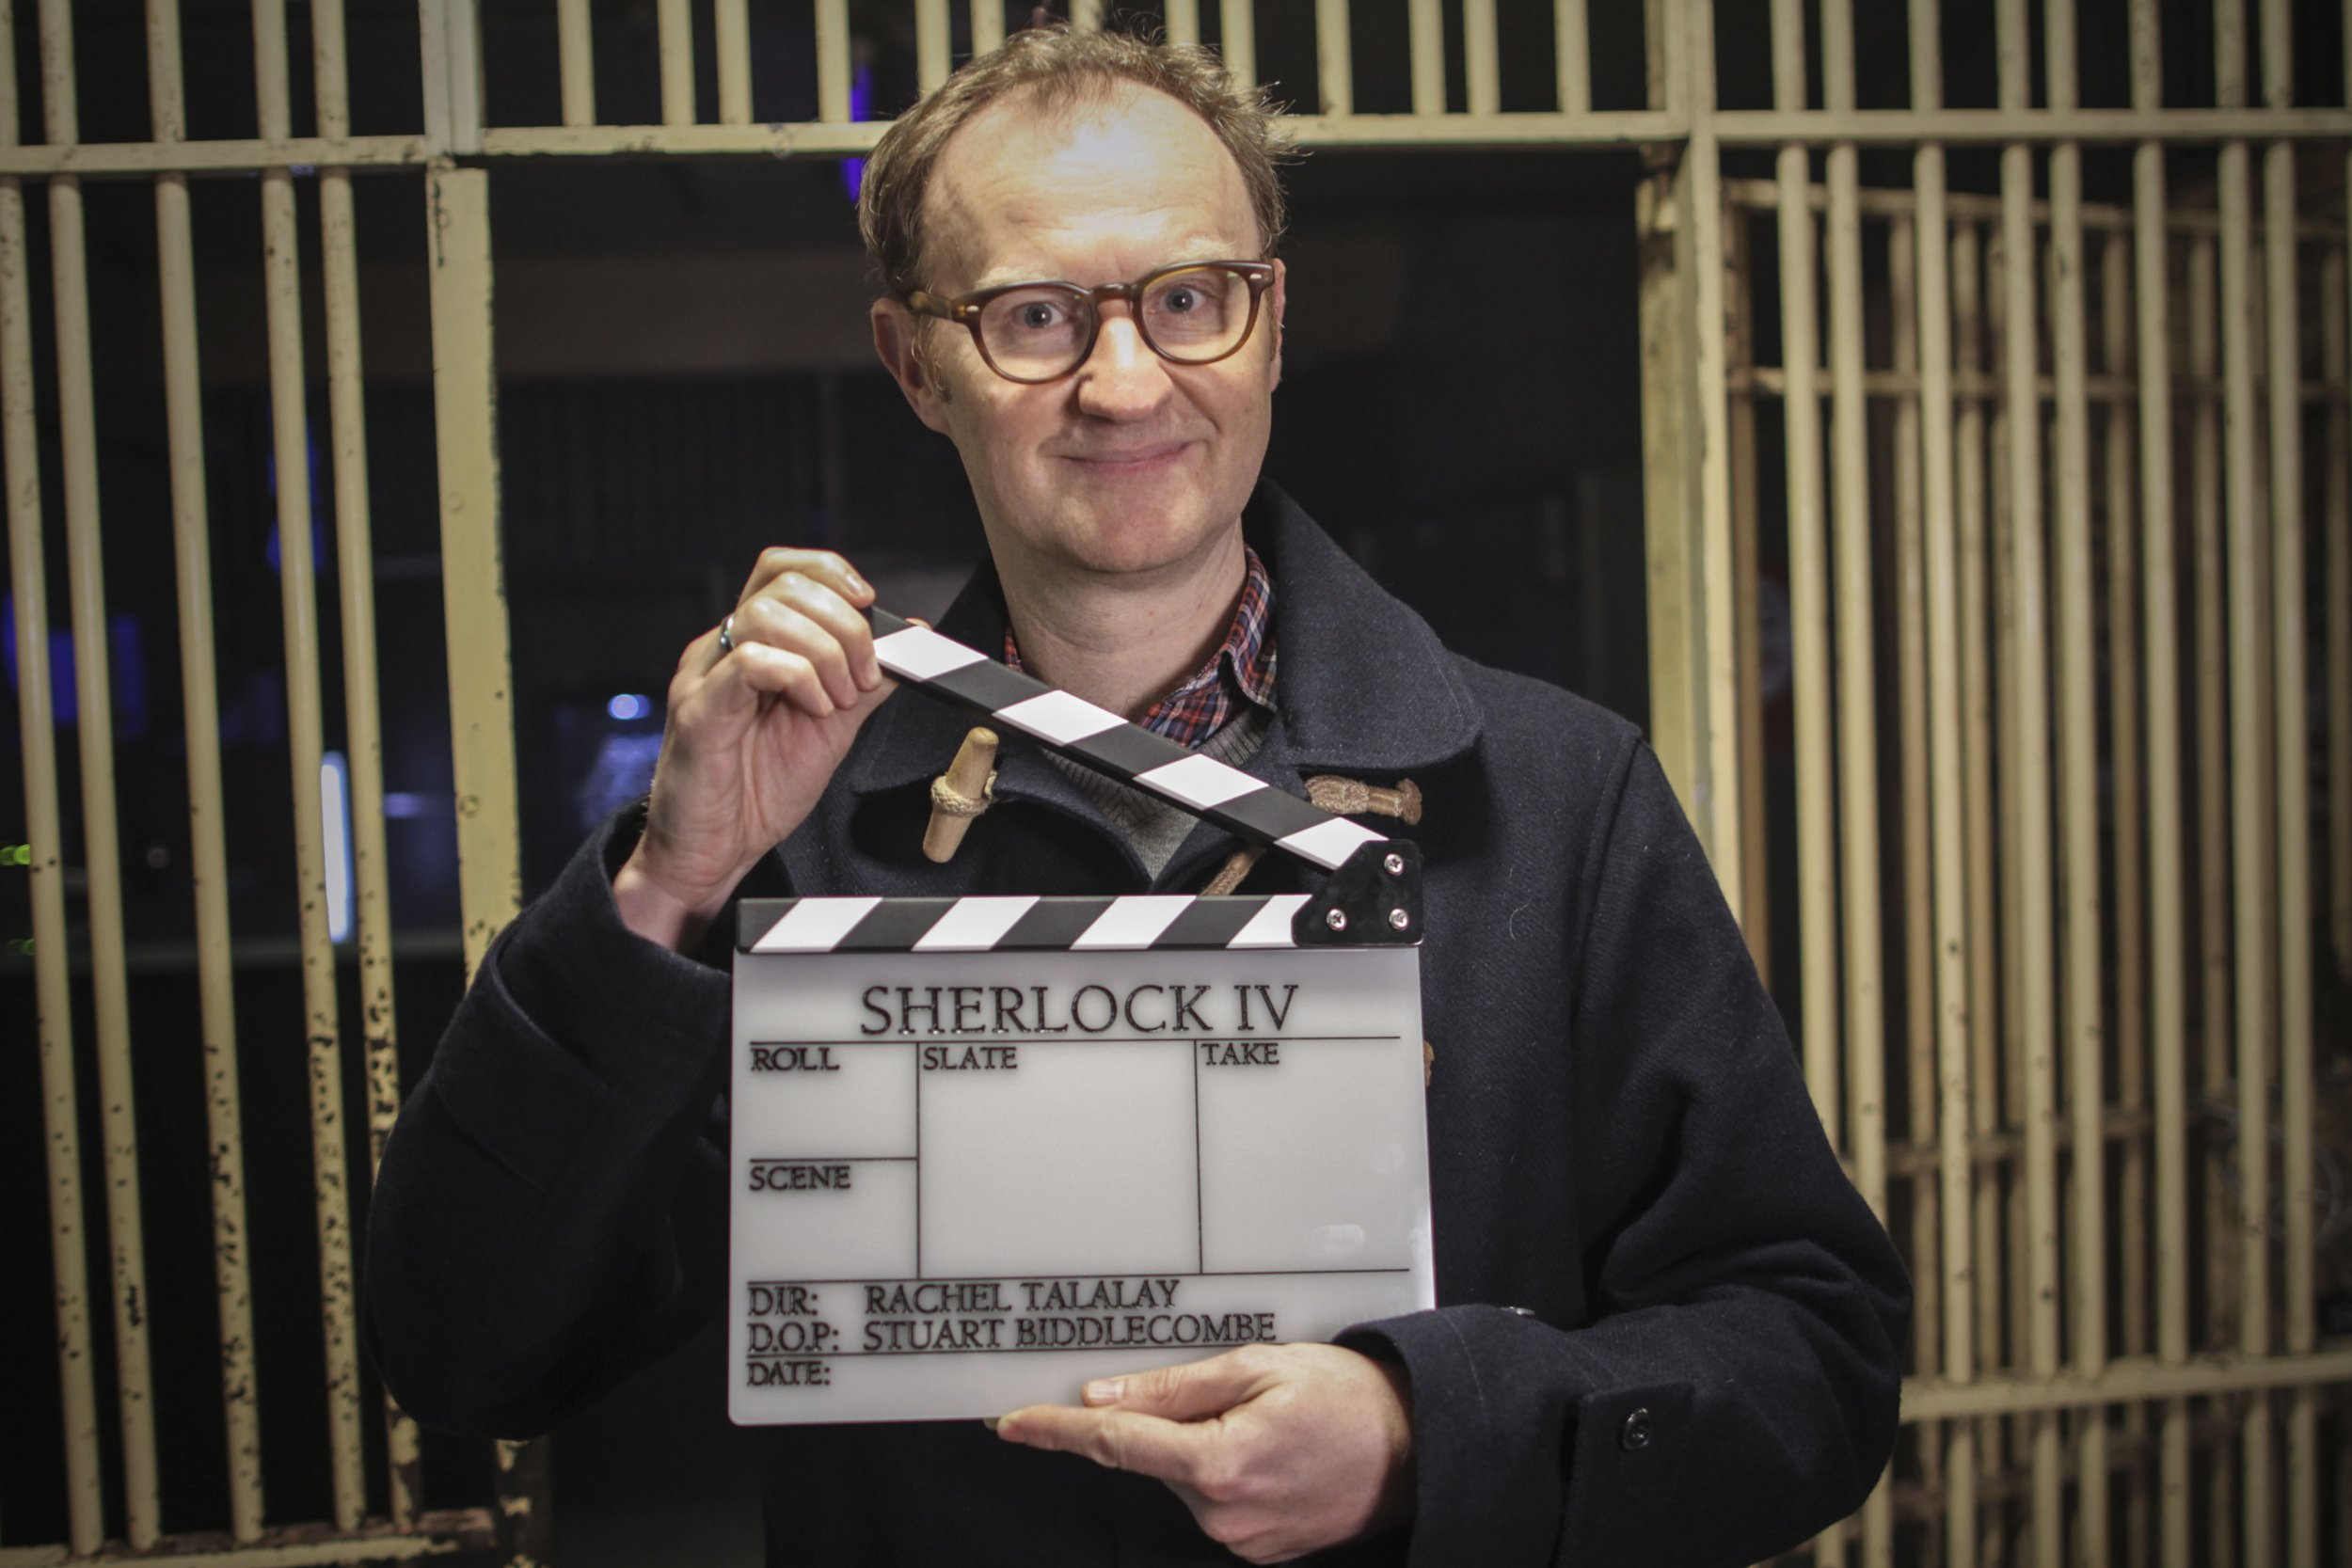 Sherlock season 4 begins production